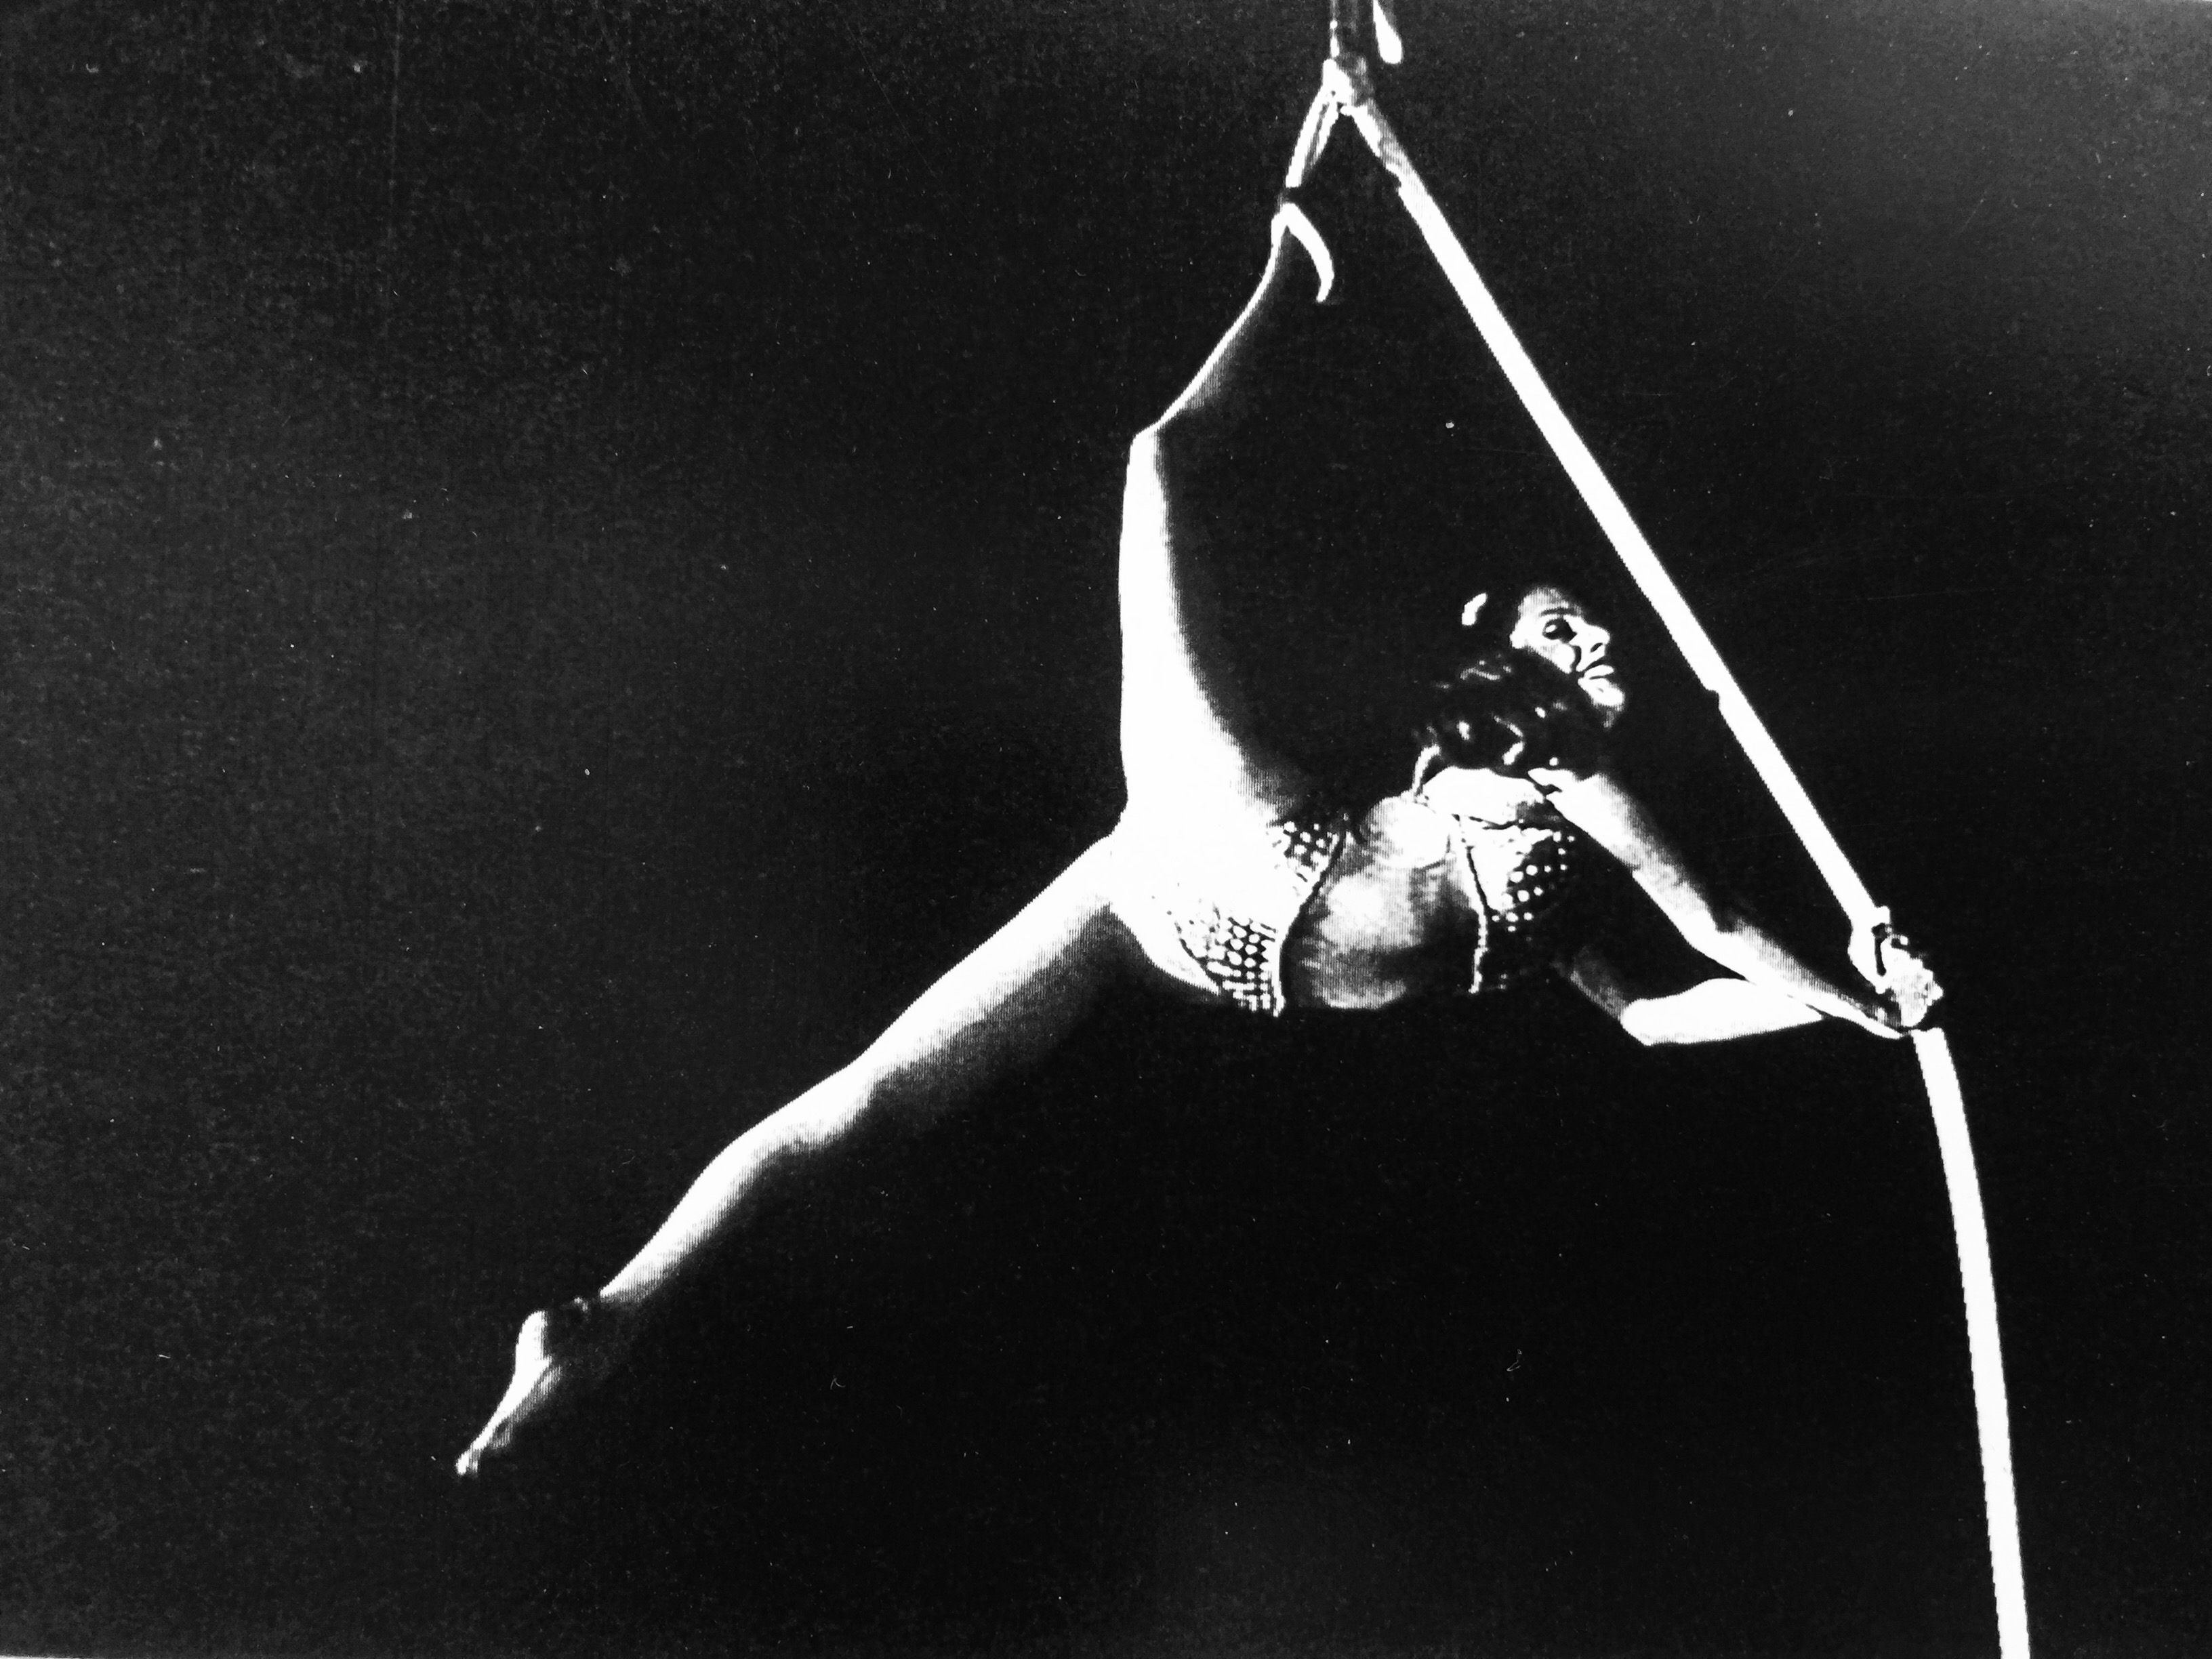 The Circus Aerialist Who Doesn't Take Risks